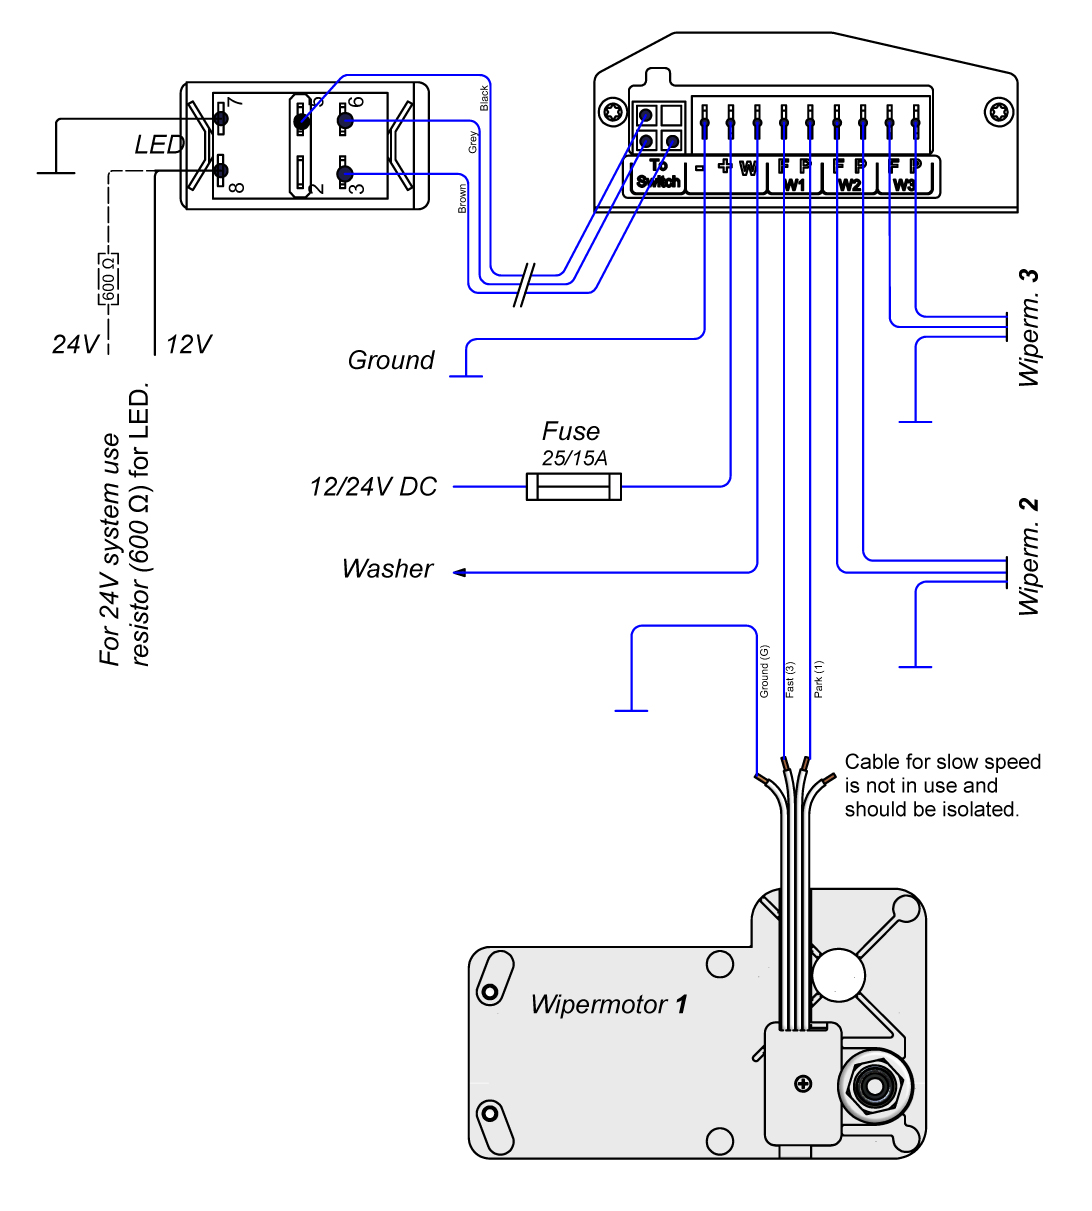 Ford Wiper Motor Wiring Diagram - Wiring Diagram Base www - www.jabstudio.it | Ford Rear Wiper Motor Wiring Diagram |  | Jab Studio